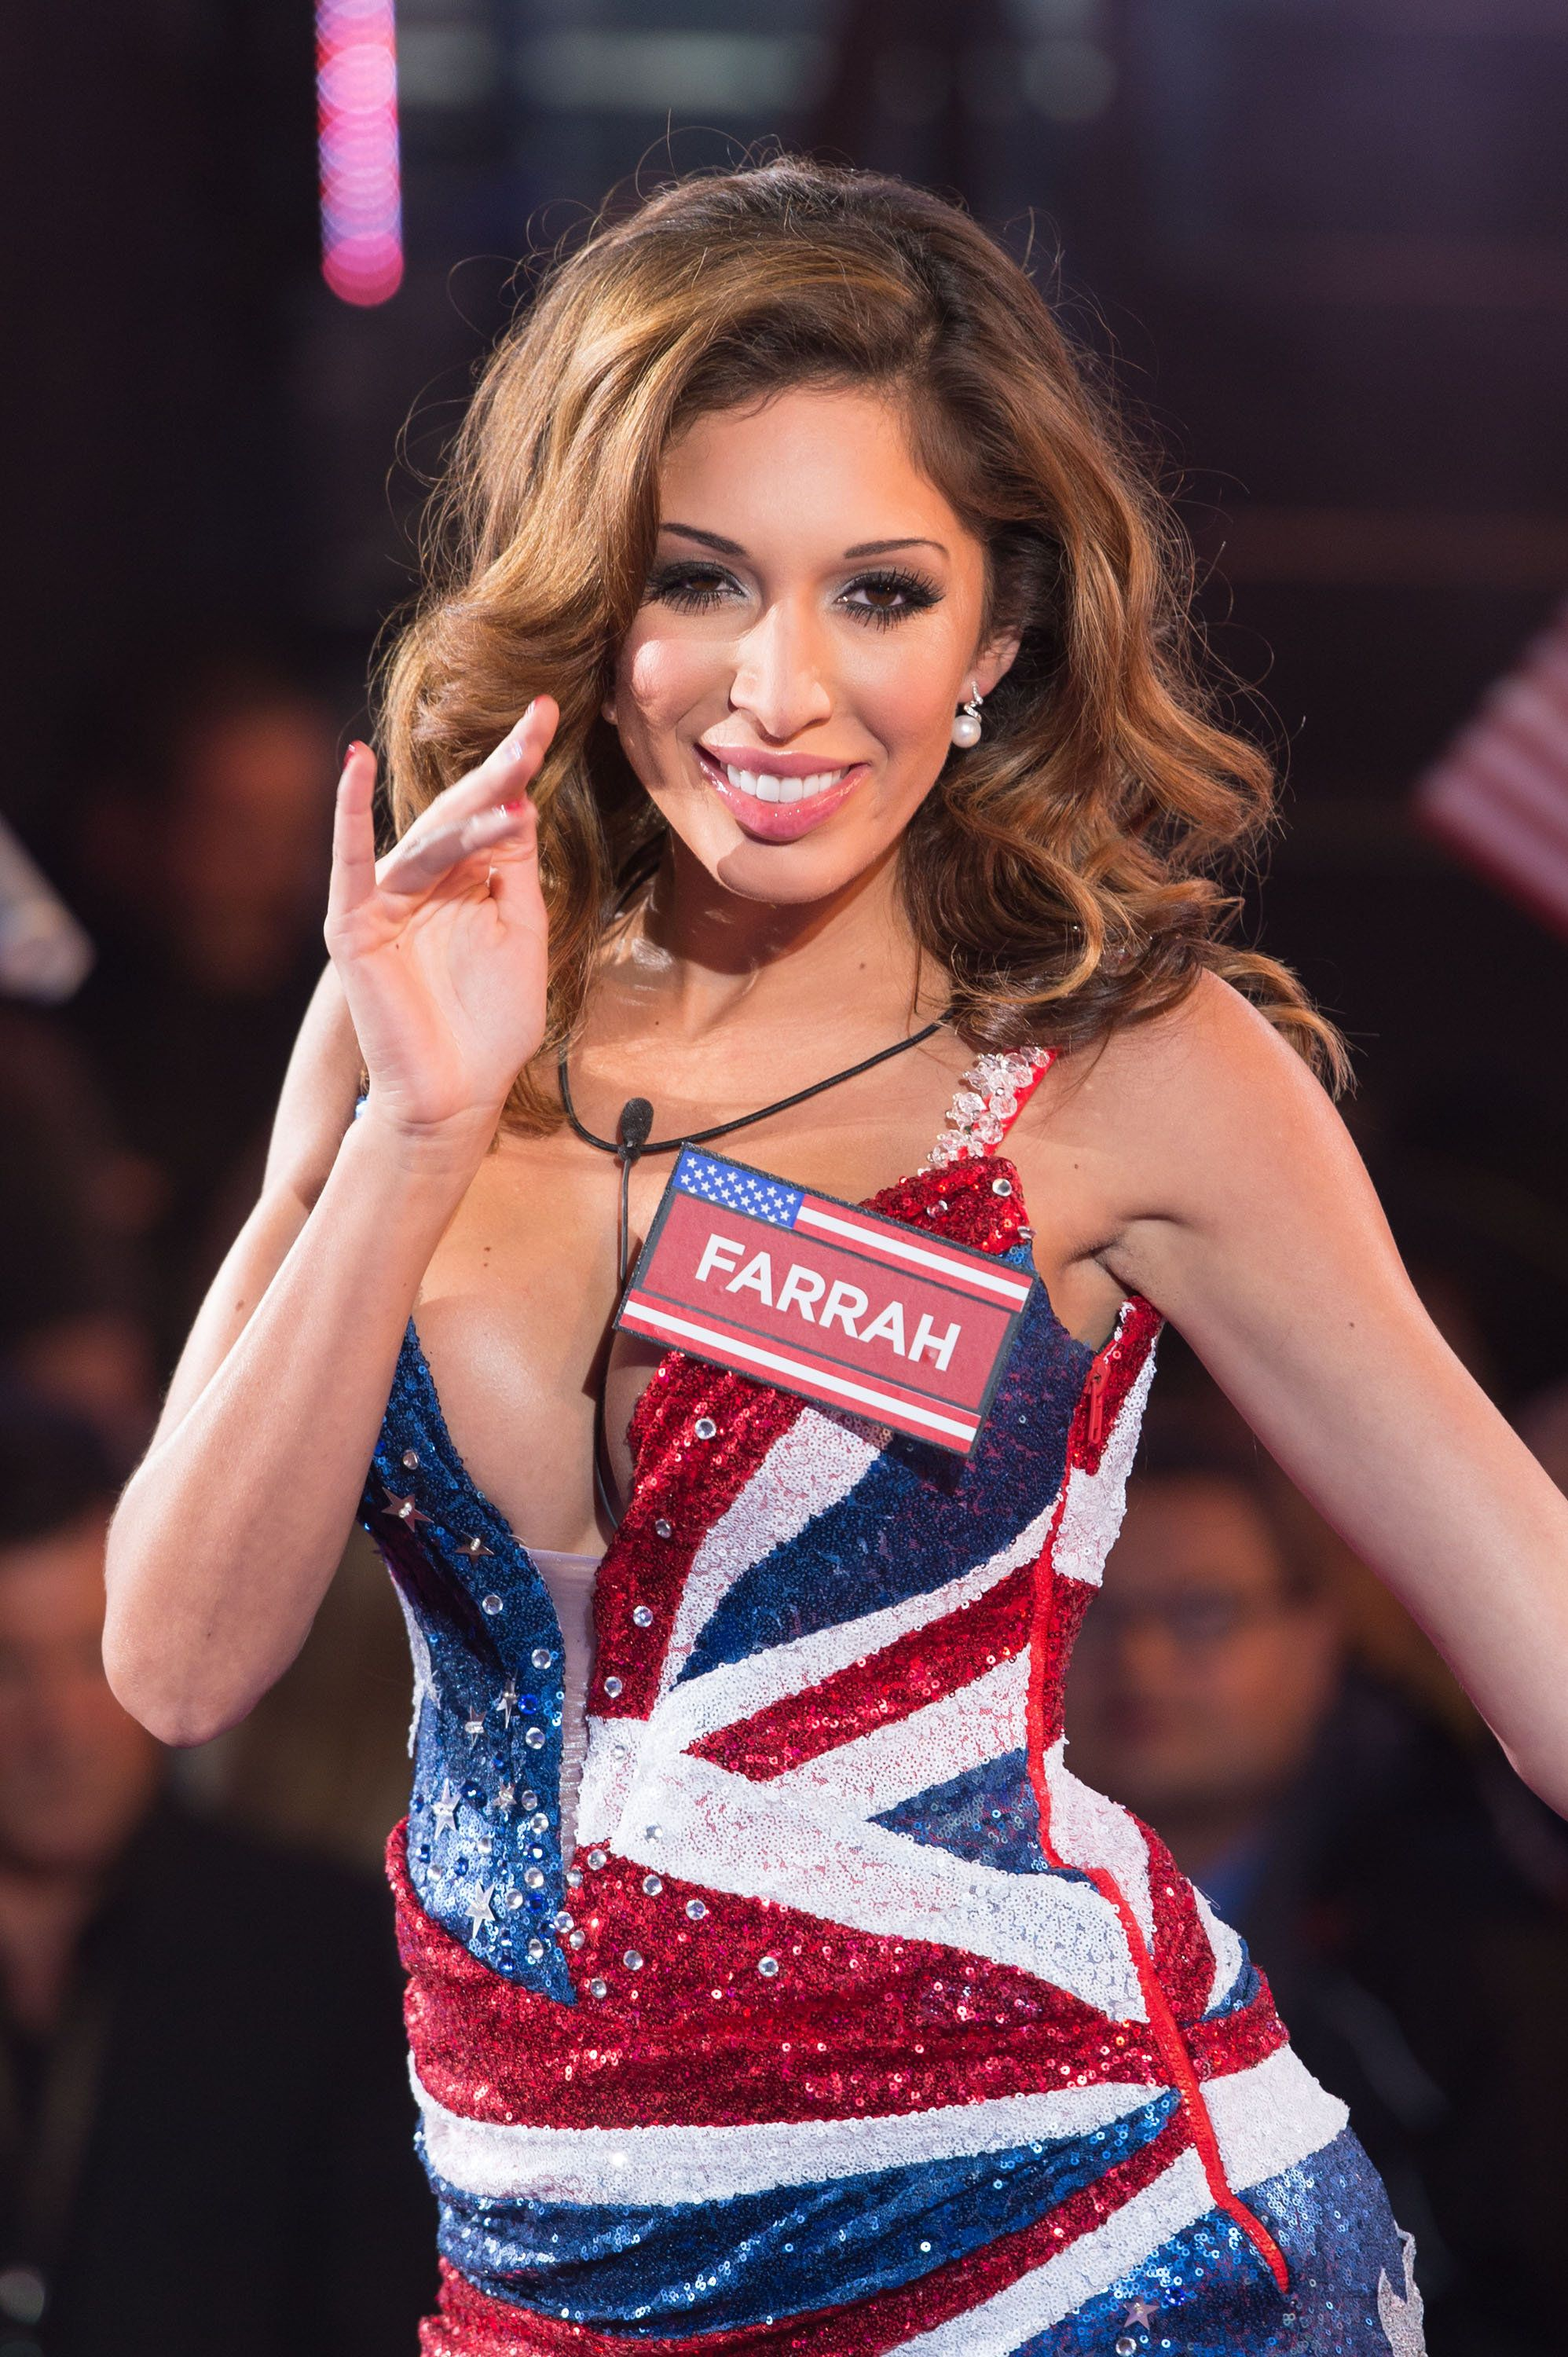 BOREHAMWOOD, ENGLAND - AUGUST 27:  Farrah Abraham enters the Celebrity Big Brother house at Elstree Studios on August 27, 2015 in Borehamwood, England.  (Photo by Ian Gavan/Getty Images)